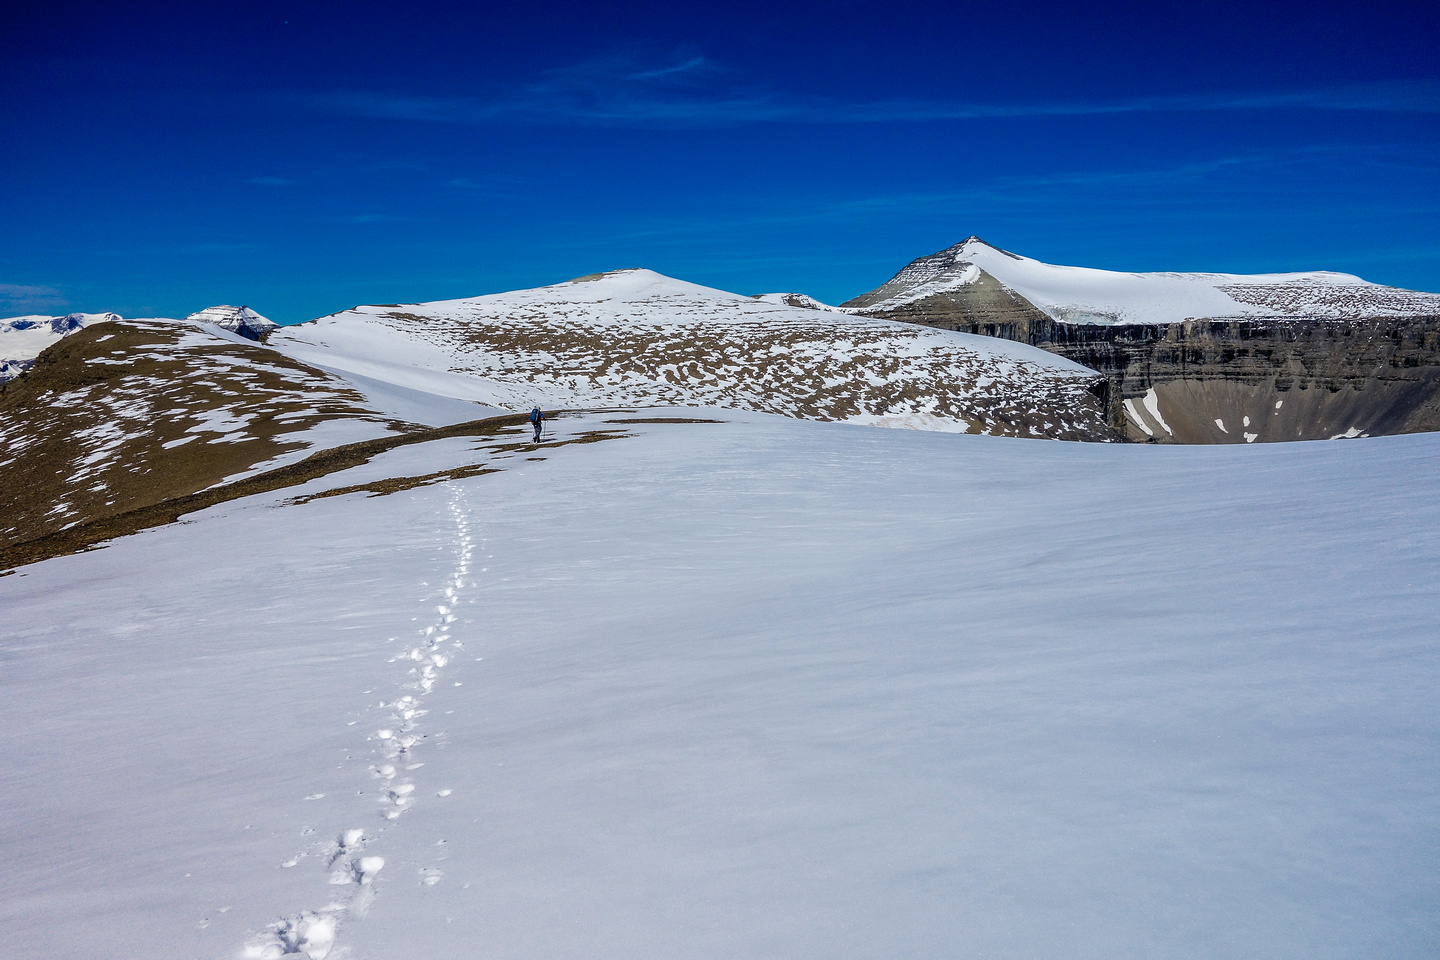 We avoided as much glacier as possible due to hidden crevasses with the fresh snow.